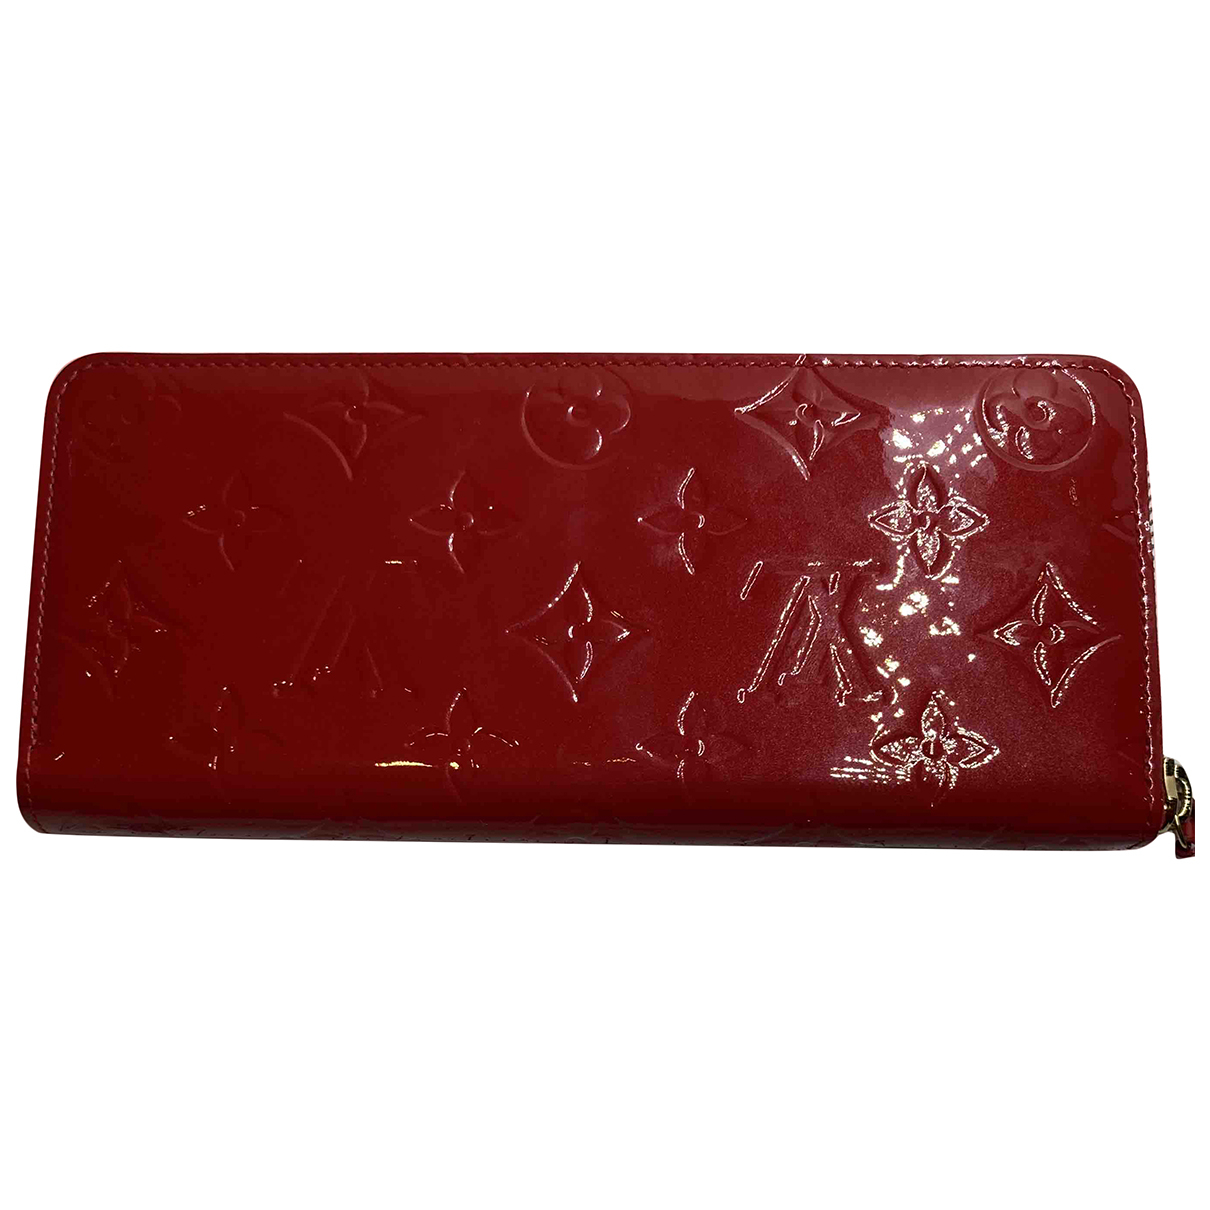 Louis Vuitton Clemence Red Patent leather wallet for Women N